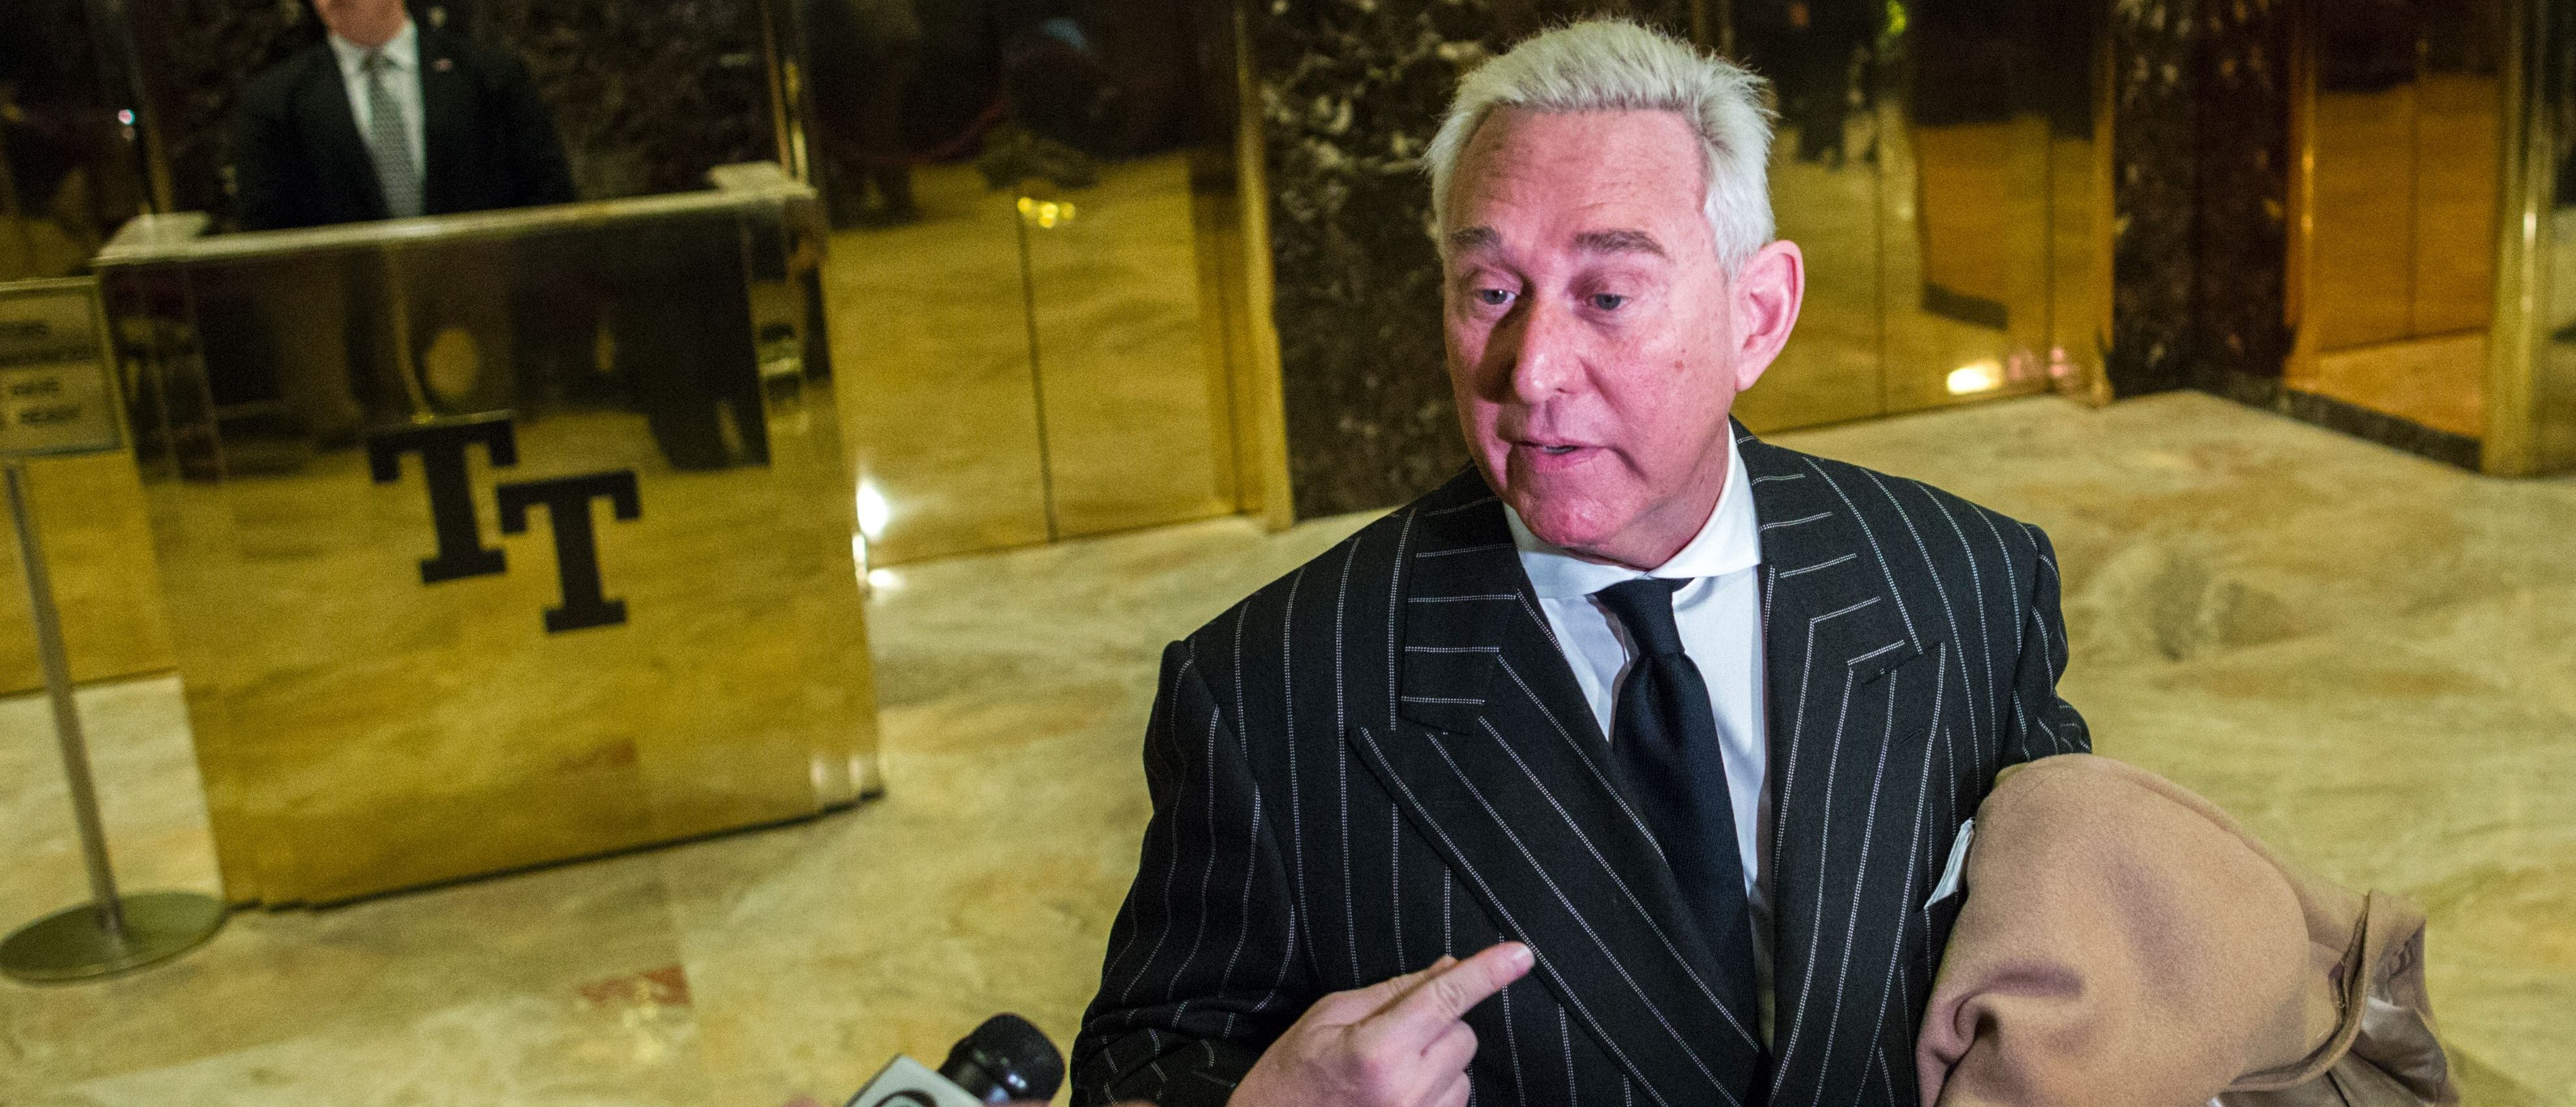 Political consultant Roger Stone speaks with media after meeting with US President-elect Donald Trump at Trump Tower on December 6, 2016 in New York. EDUARDO MUNOZ ALVAREZ/AFP/Getty Images